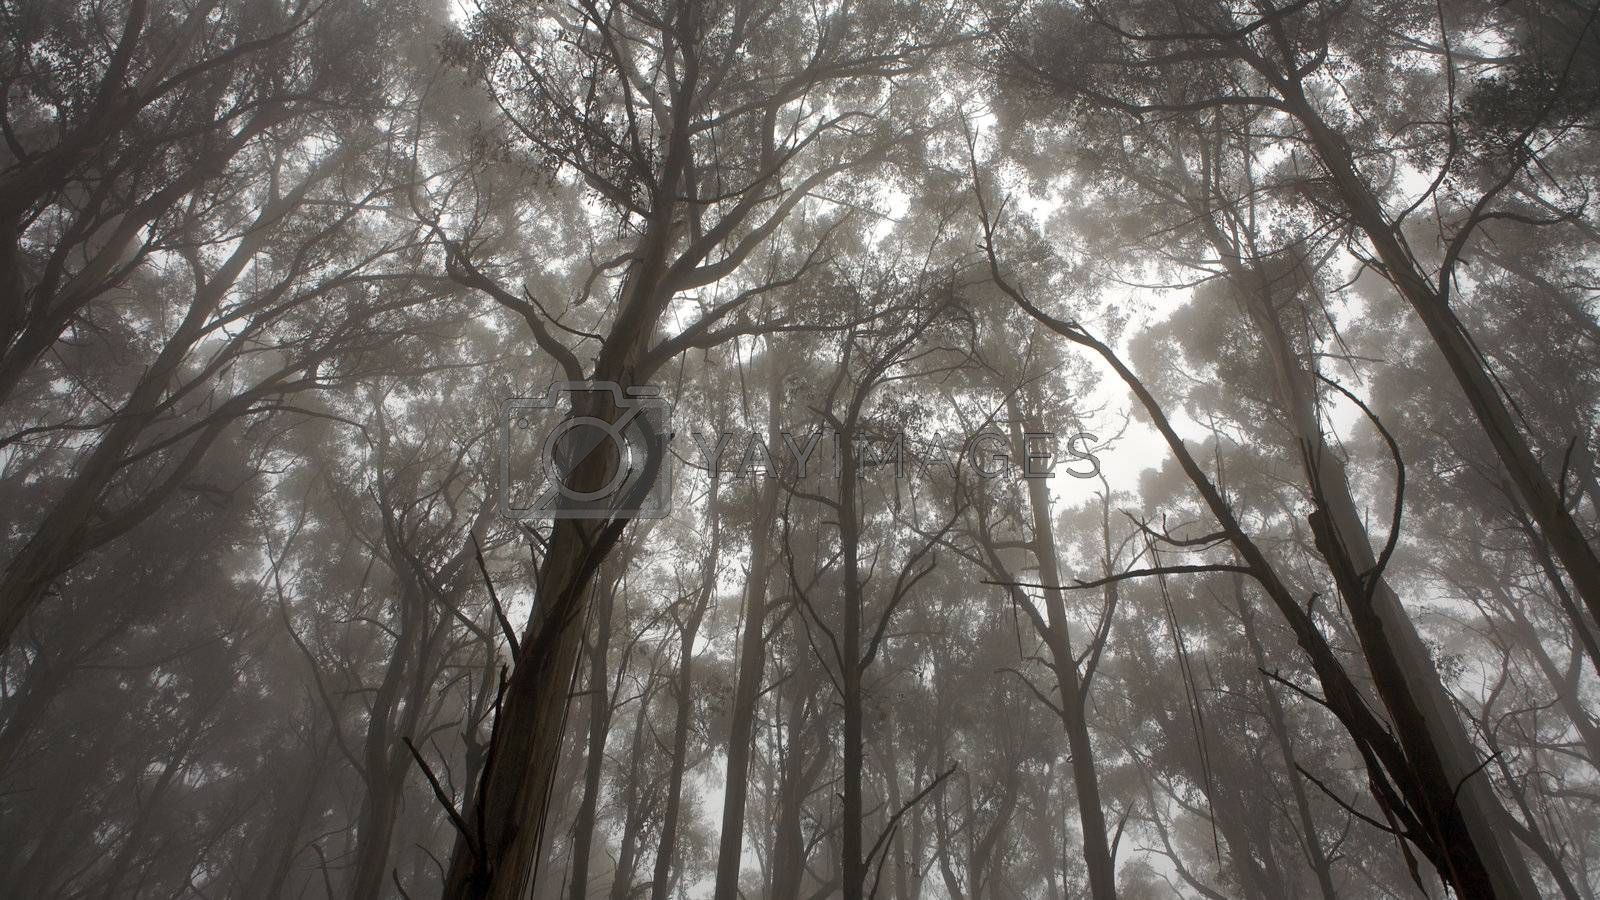 A forrest and a view of tree tops, monochrome